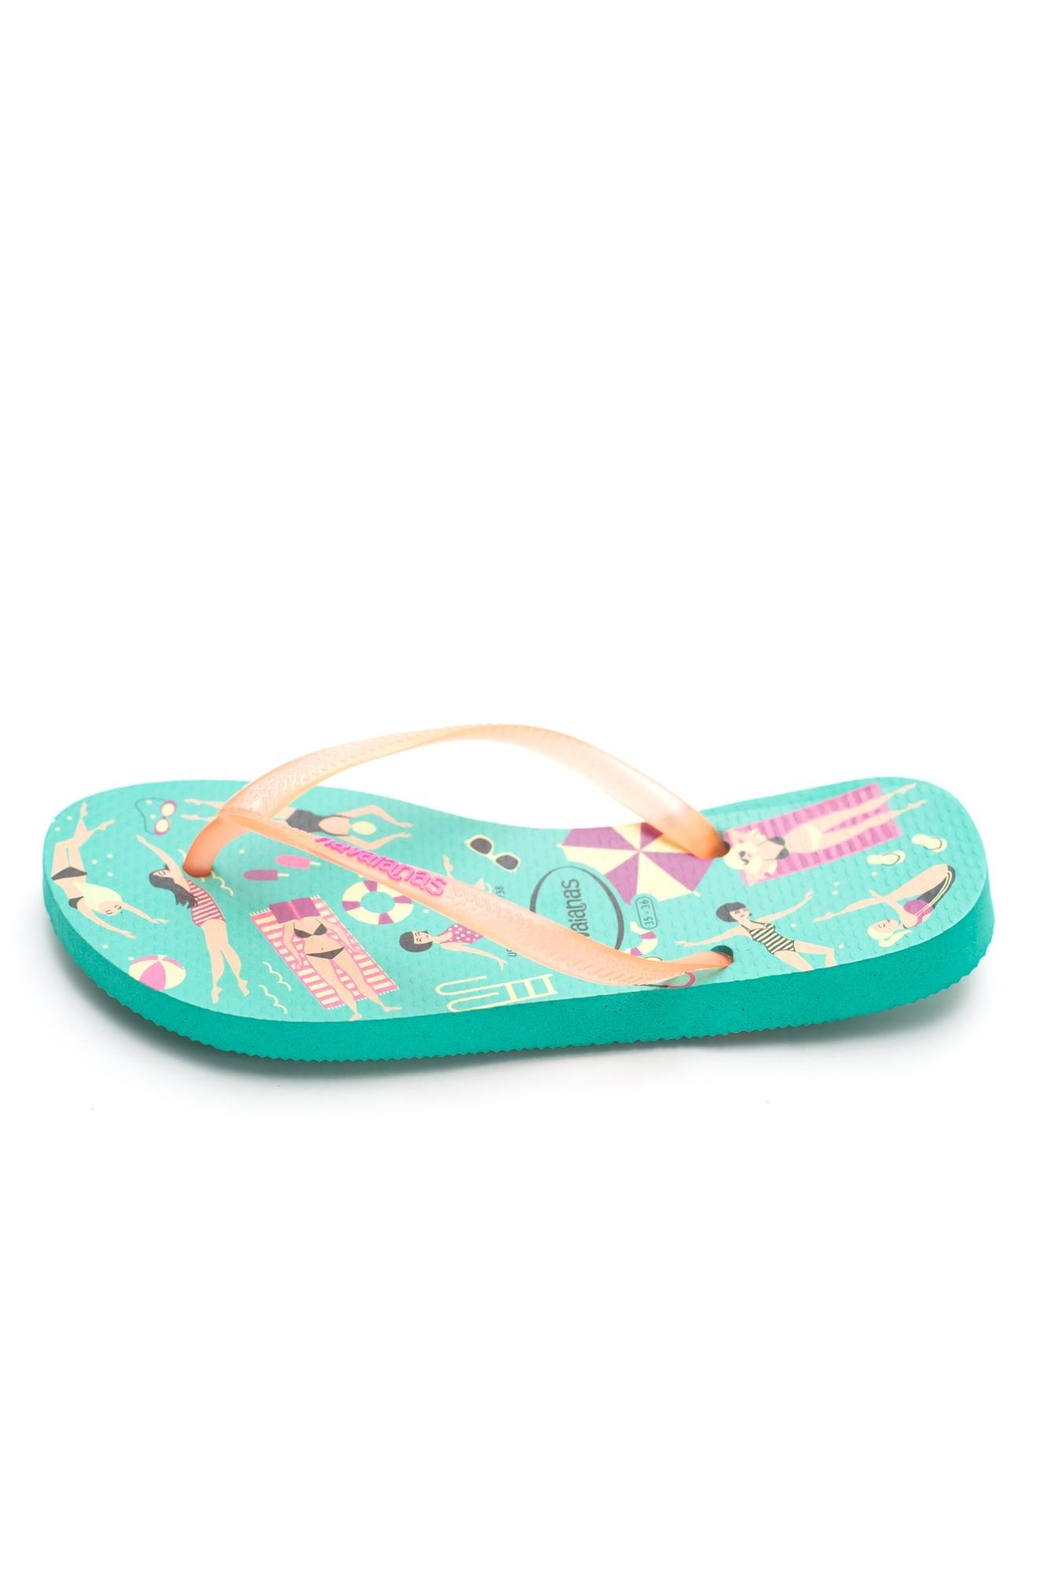 f33c427b86d7c3 Havaianas Slim Cool Sandal from Philadelphia by May 23 — Shoptiques